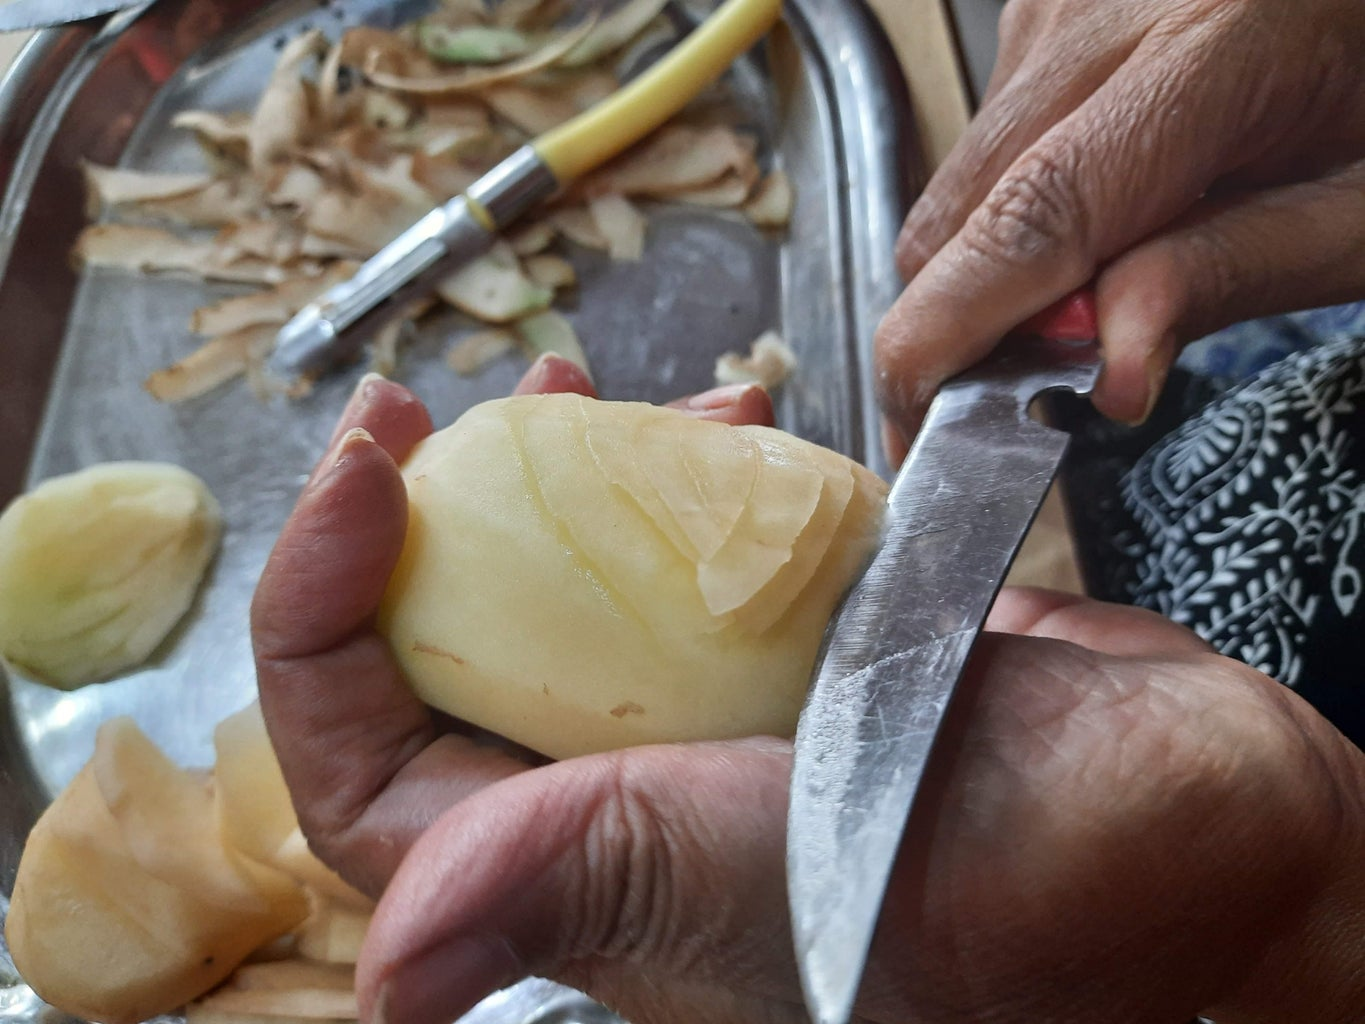 Cutting the Potatoes to Make Wings